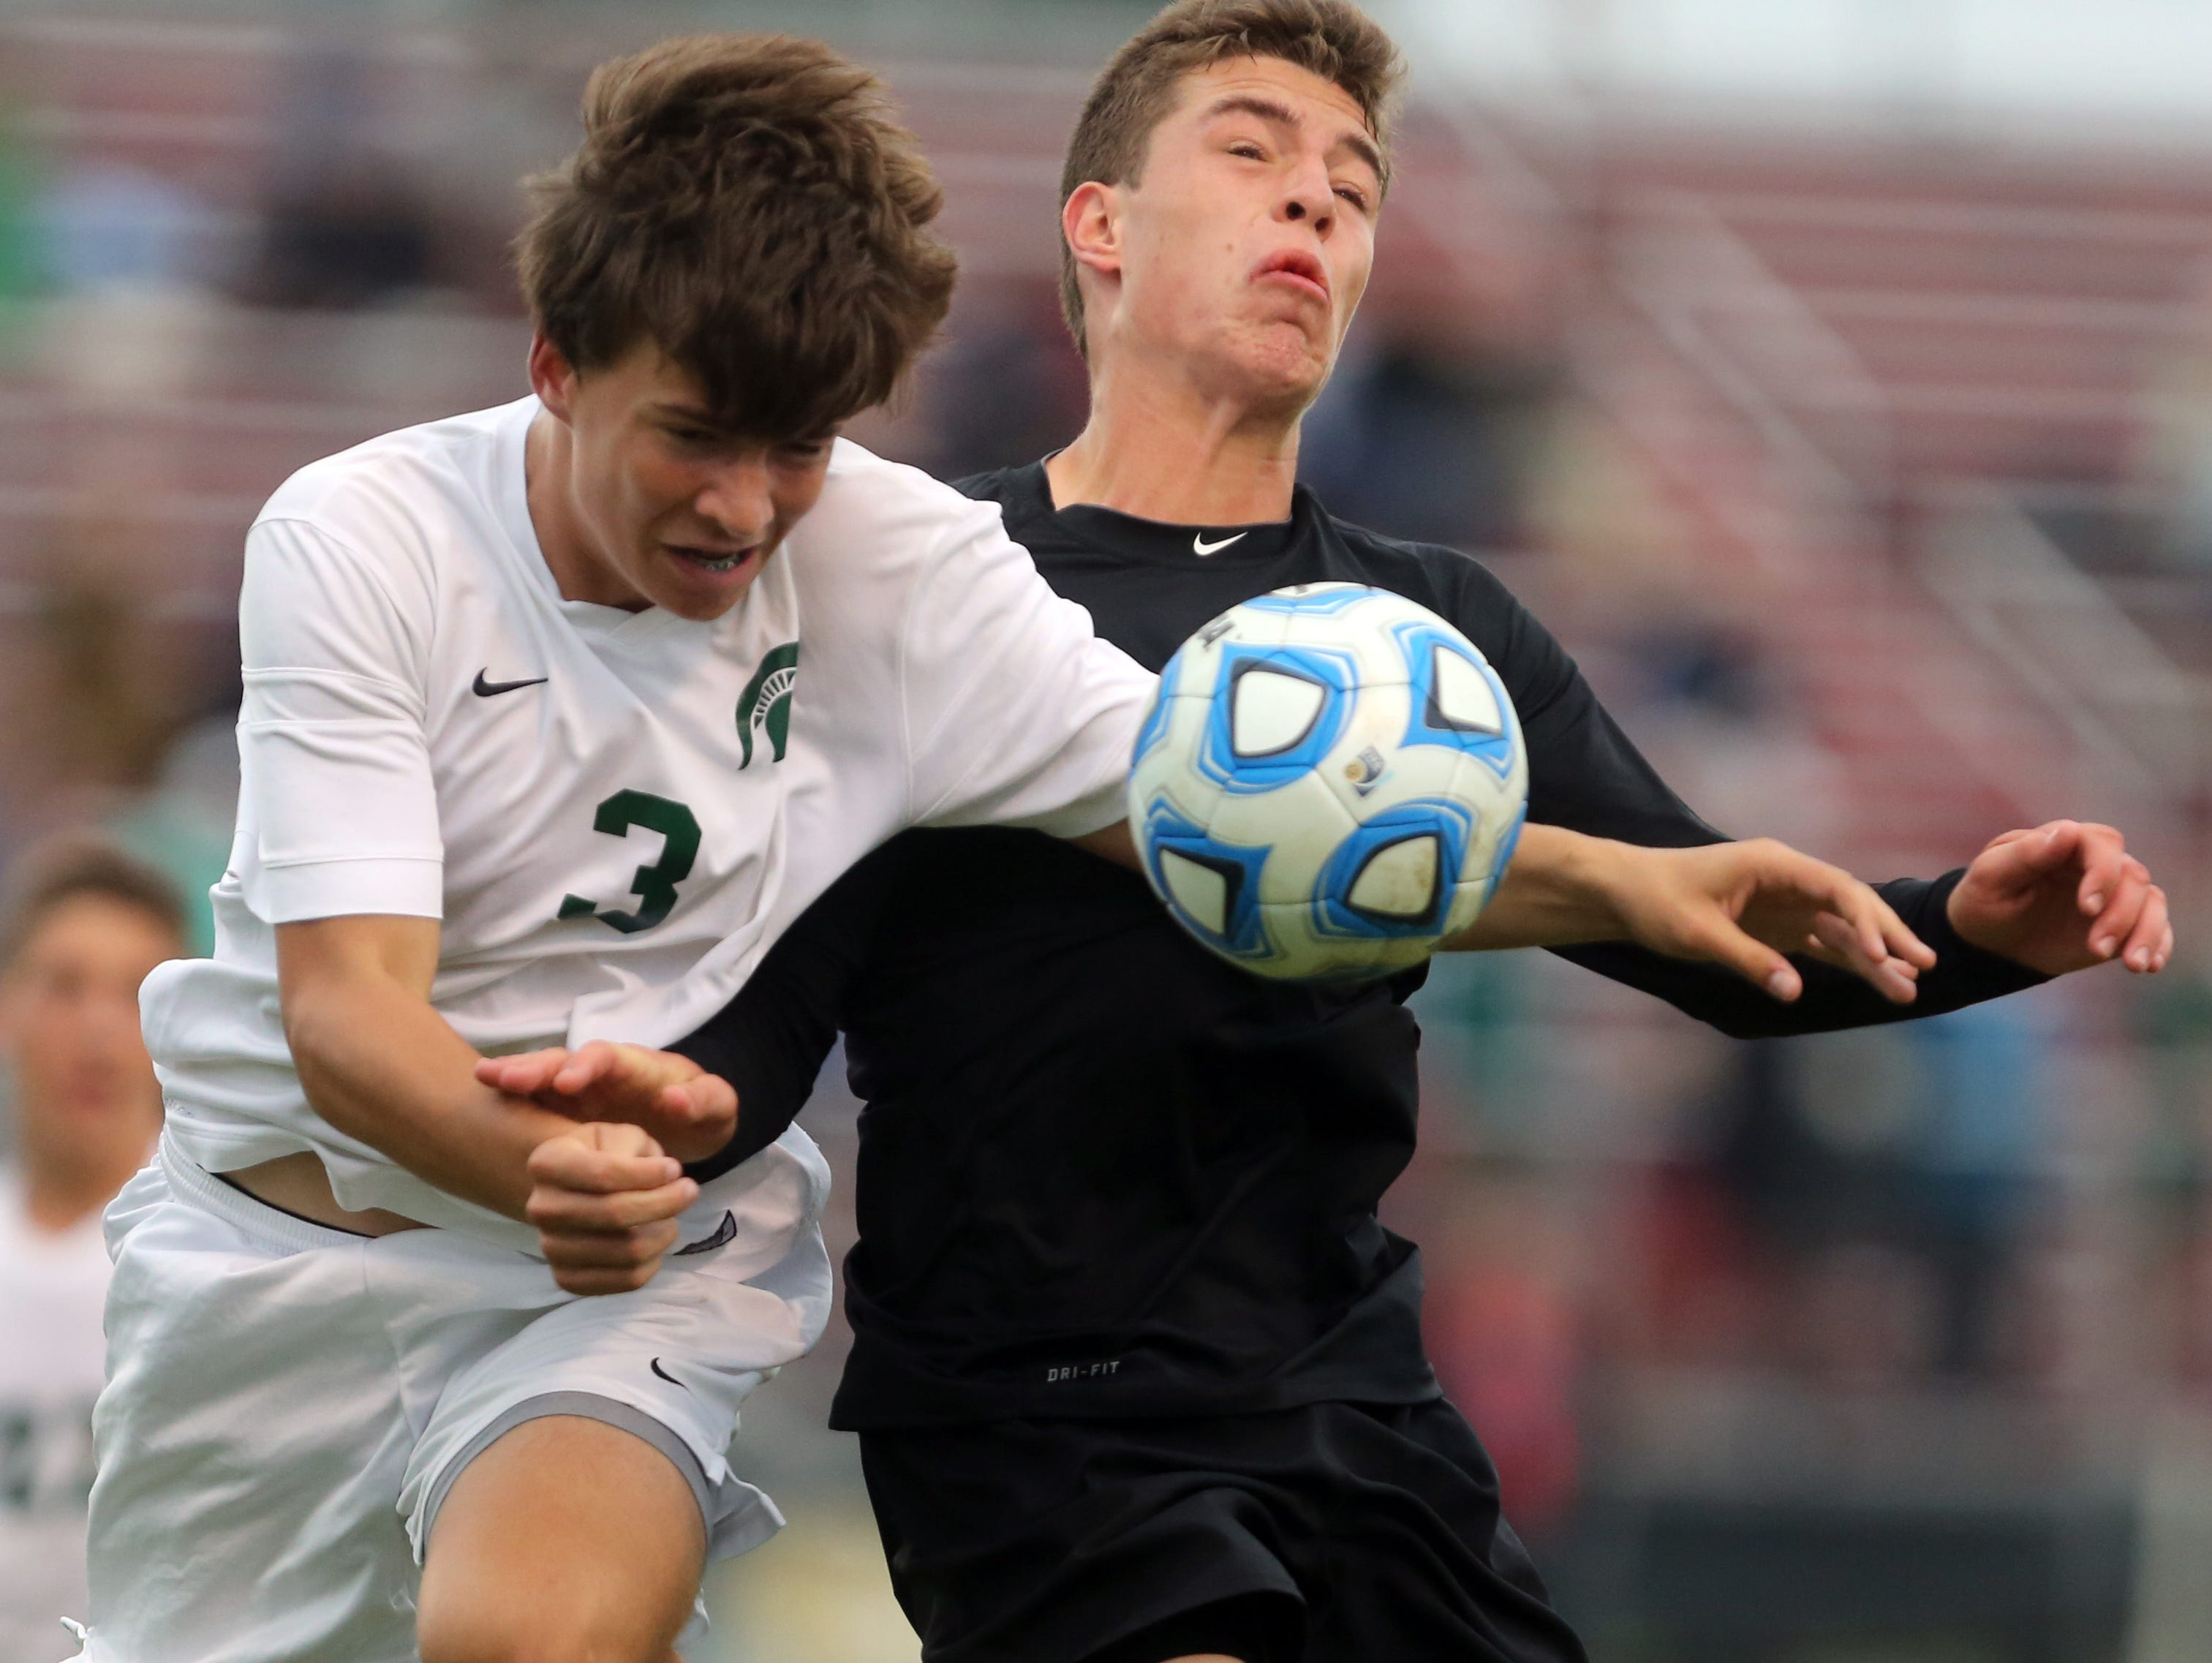 Battle Ground Academy's Jack Arnold fights for control of the ball with Webb School's Guthrie Bouchard-Dean during their Division II Class A soccer state final game.